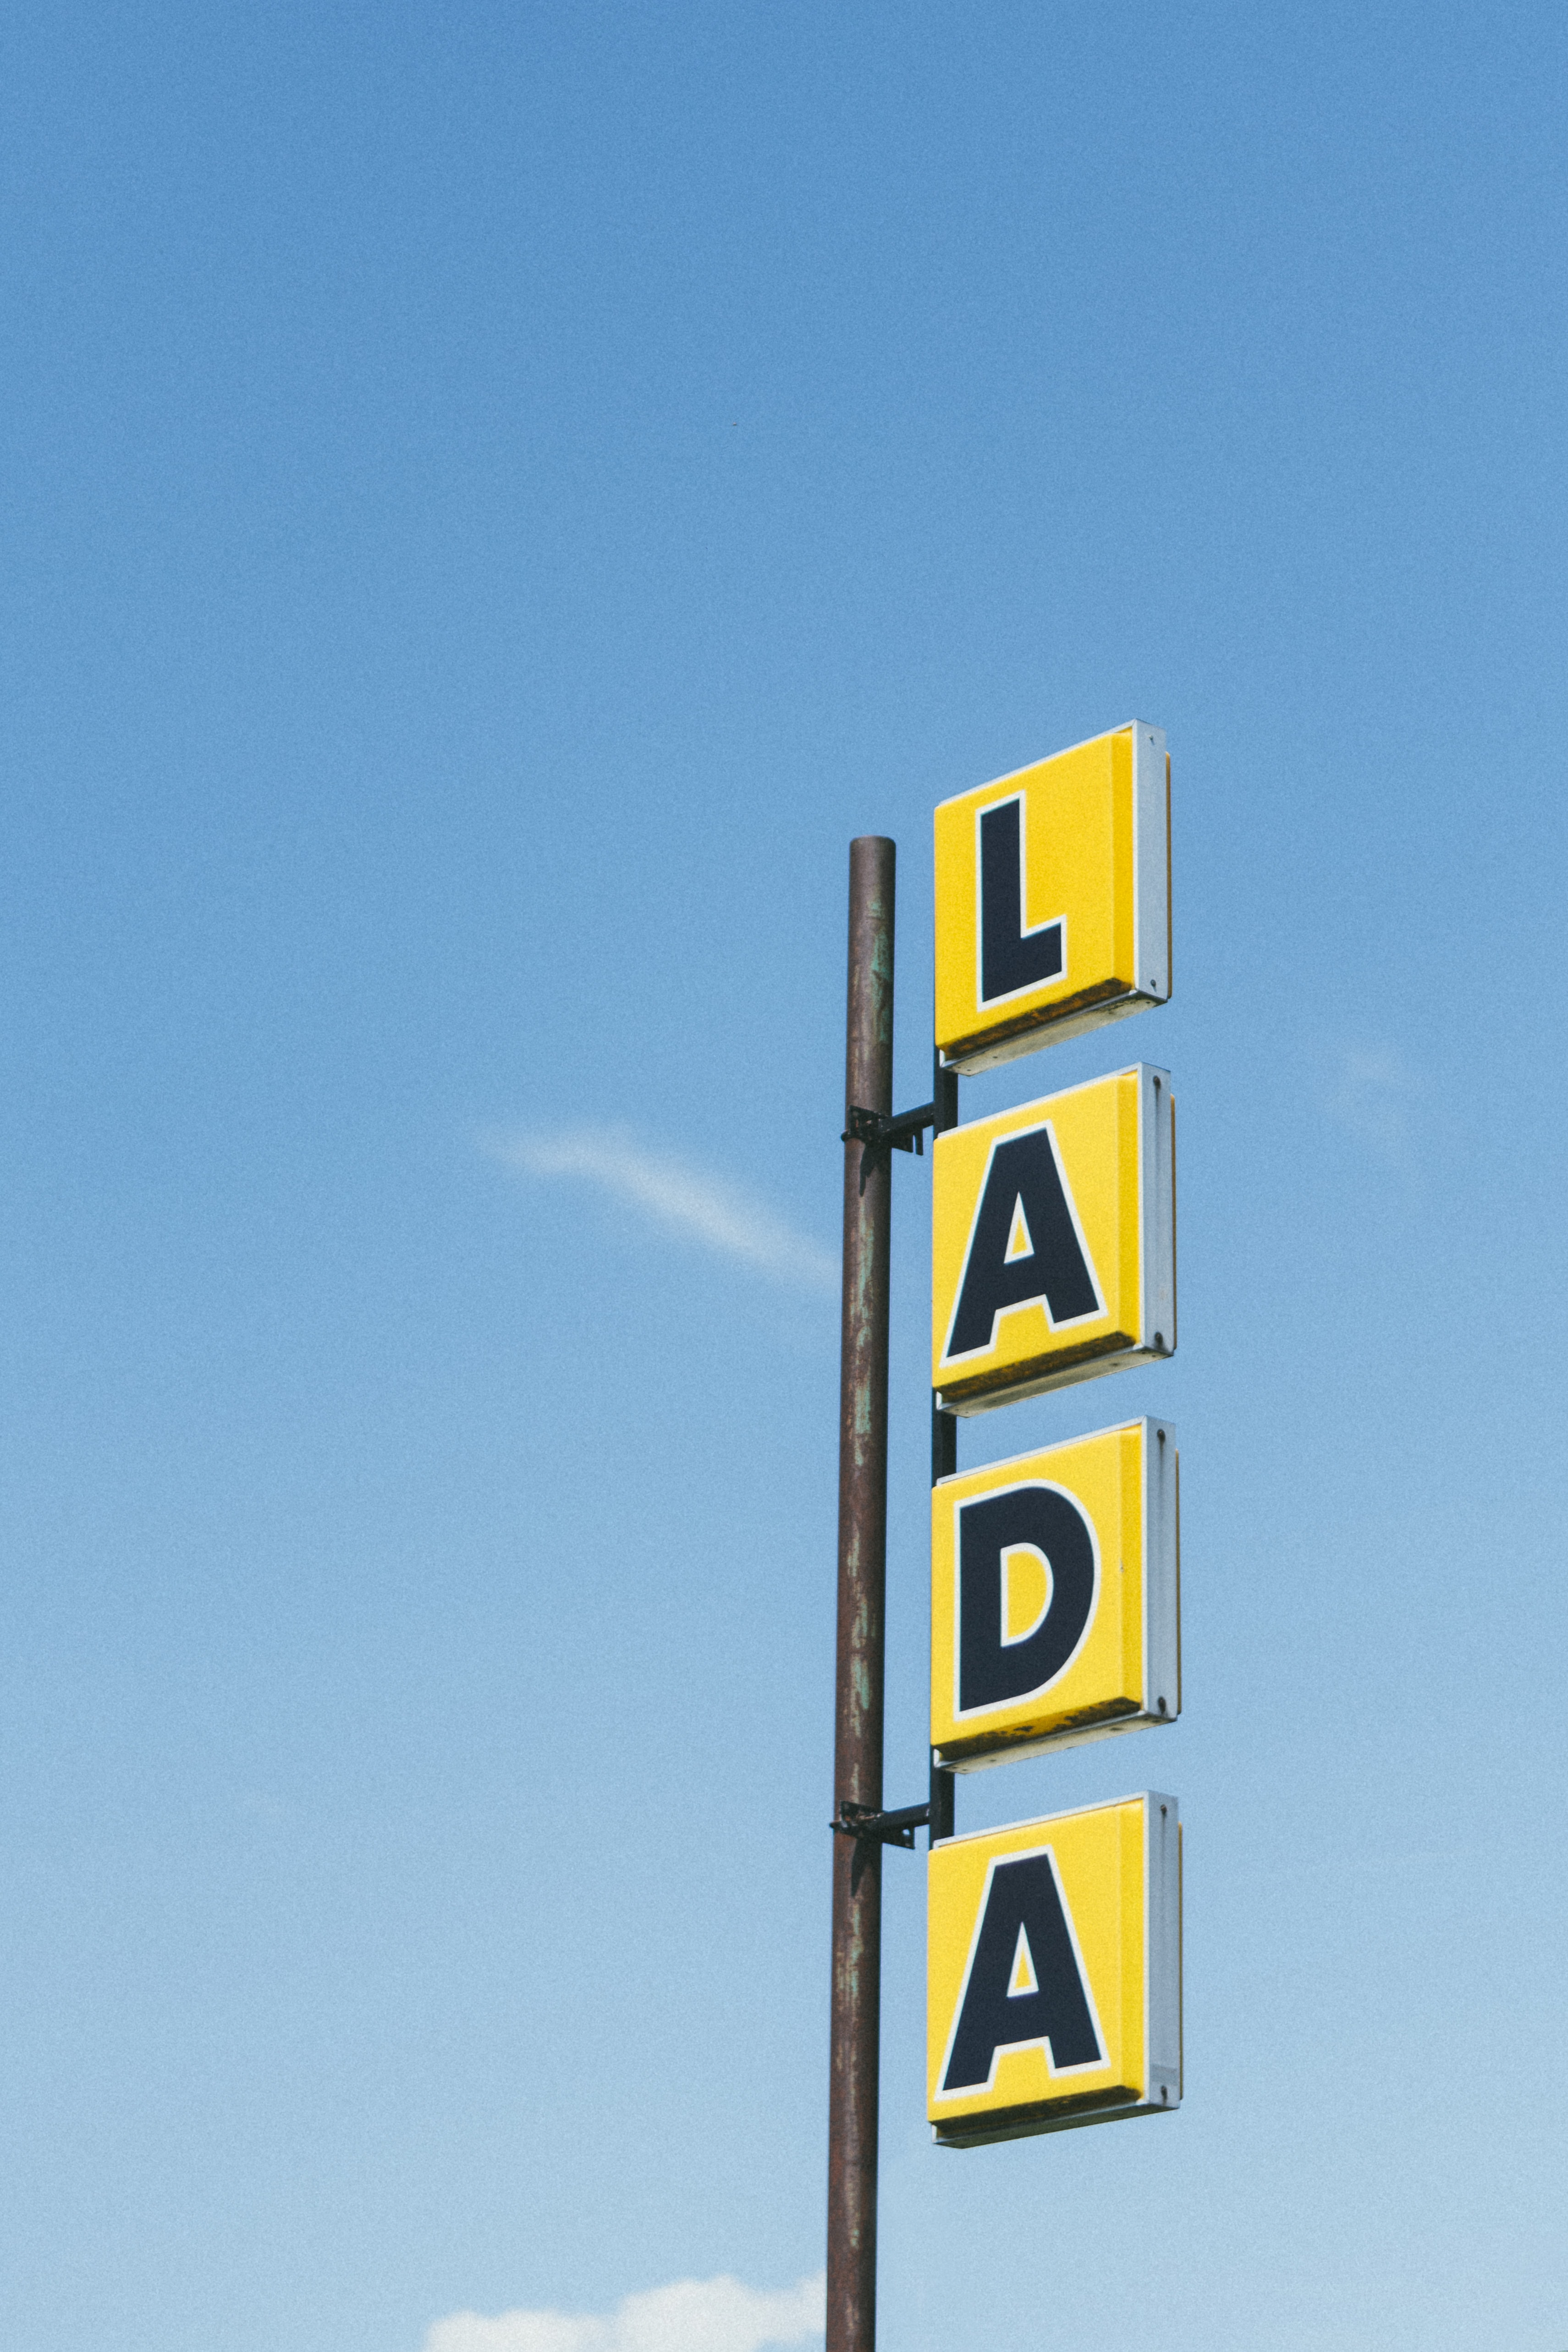 yellow and black lada signage under blue sky